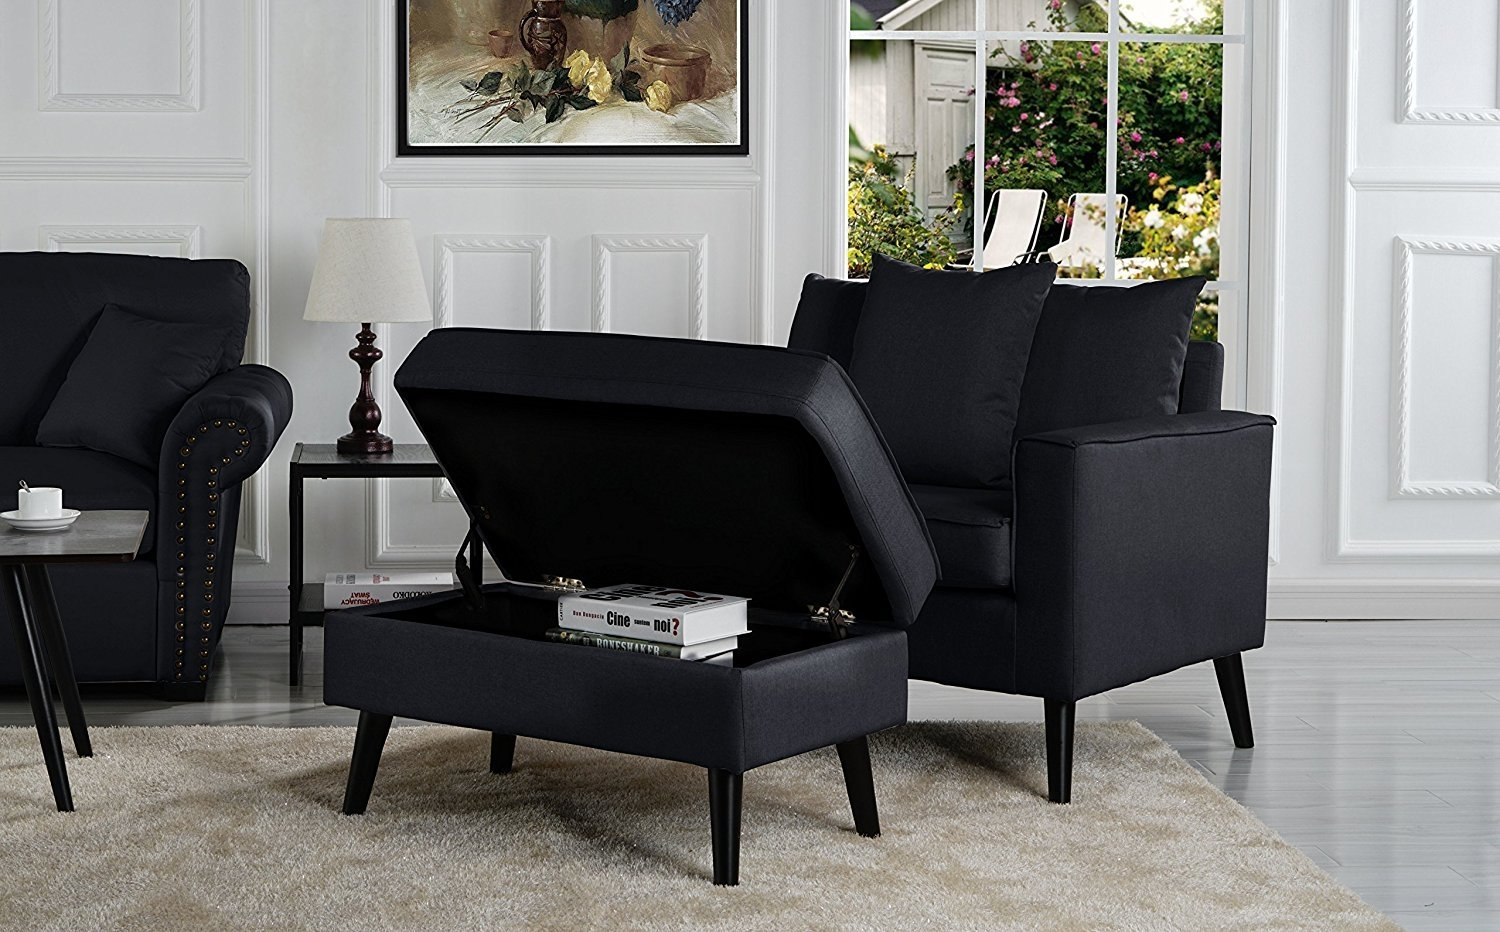 Details About Mid Century Modern Living Room Accent Chair W Footrest Storage Black